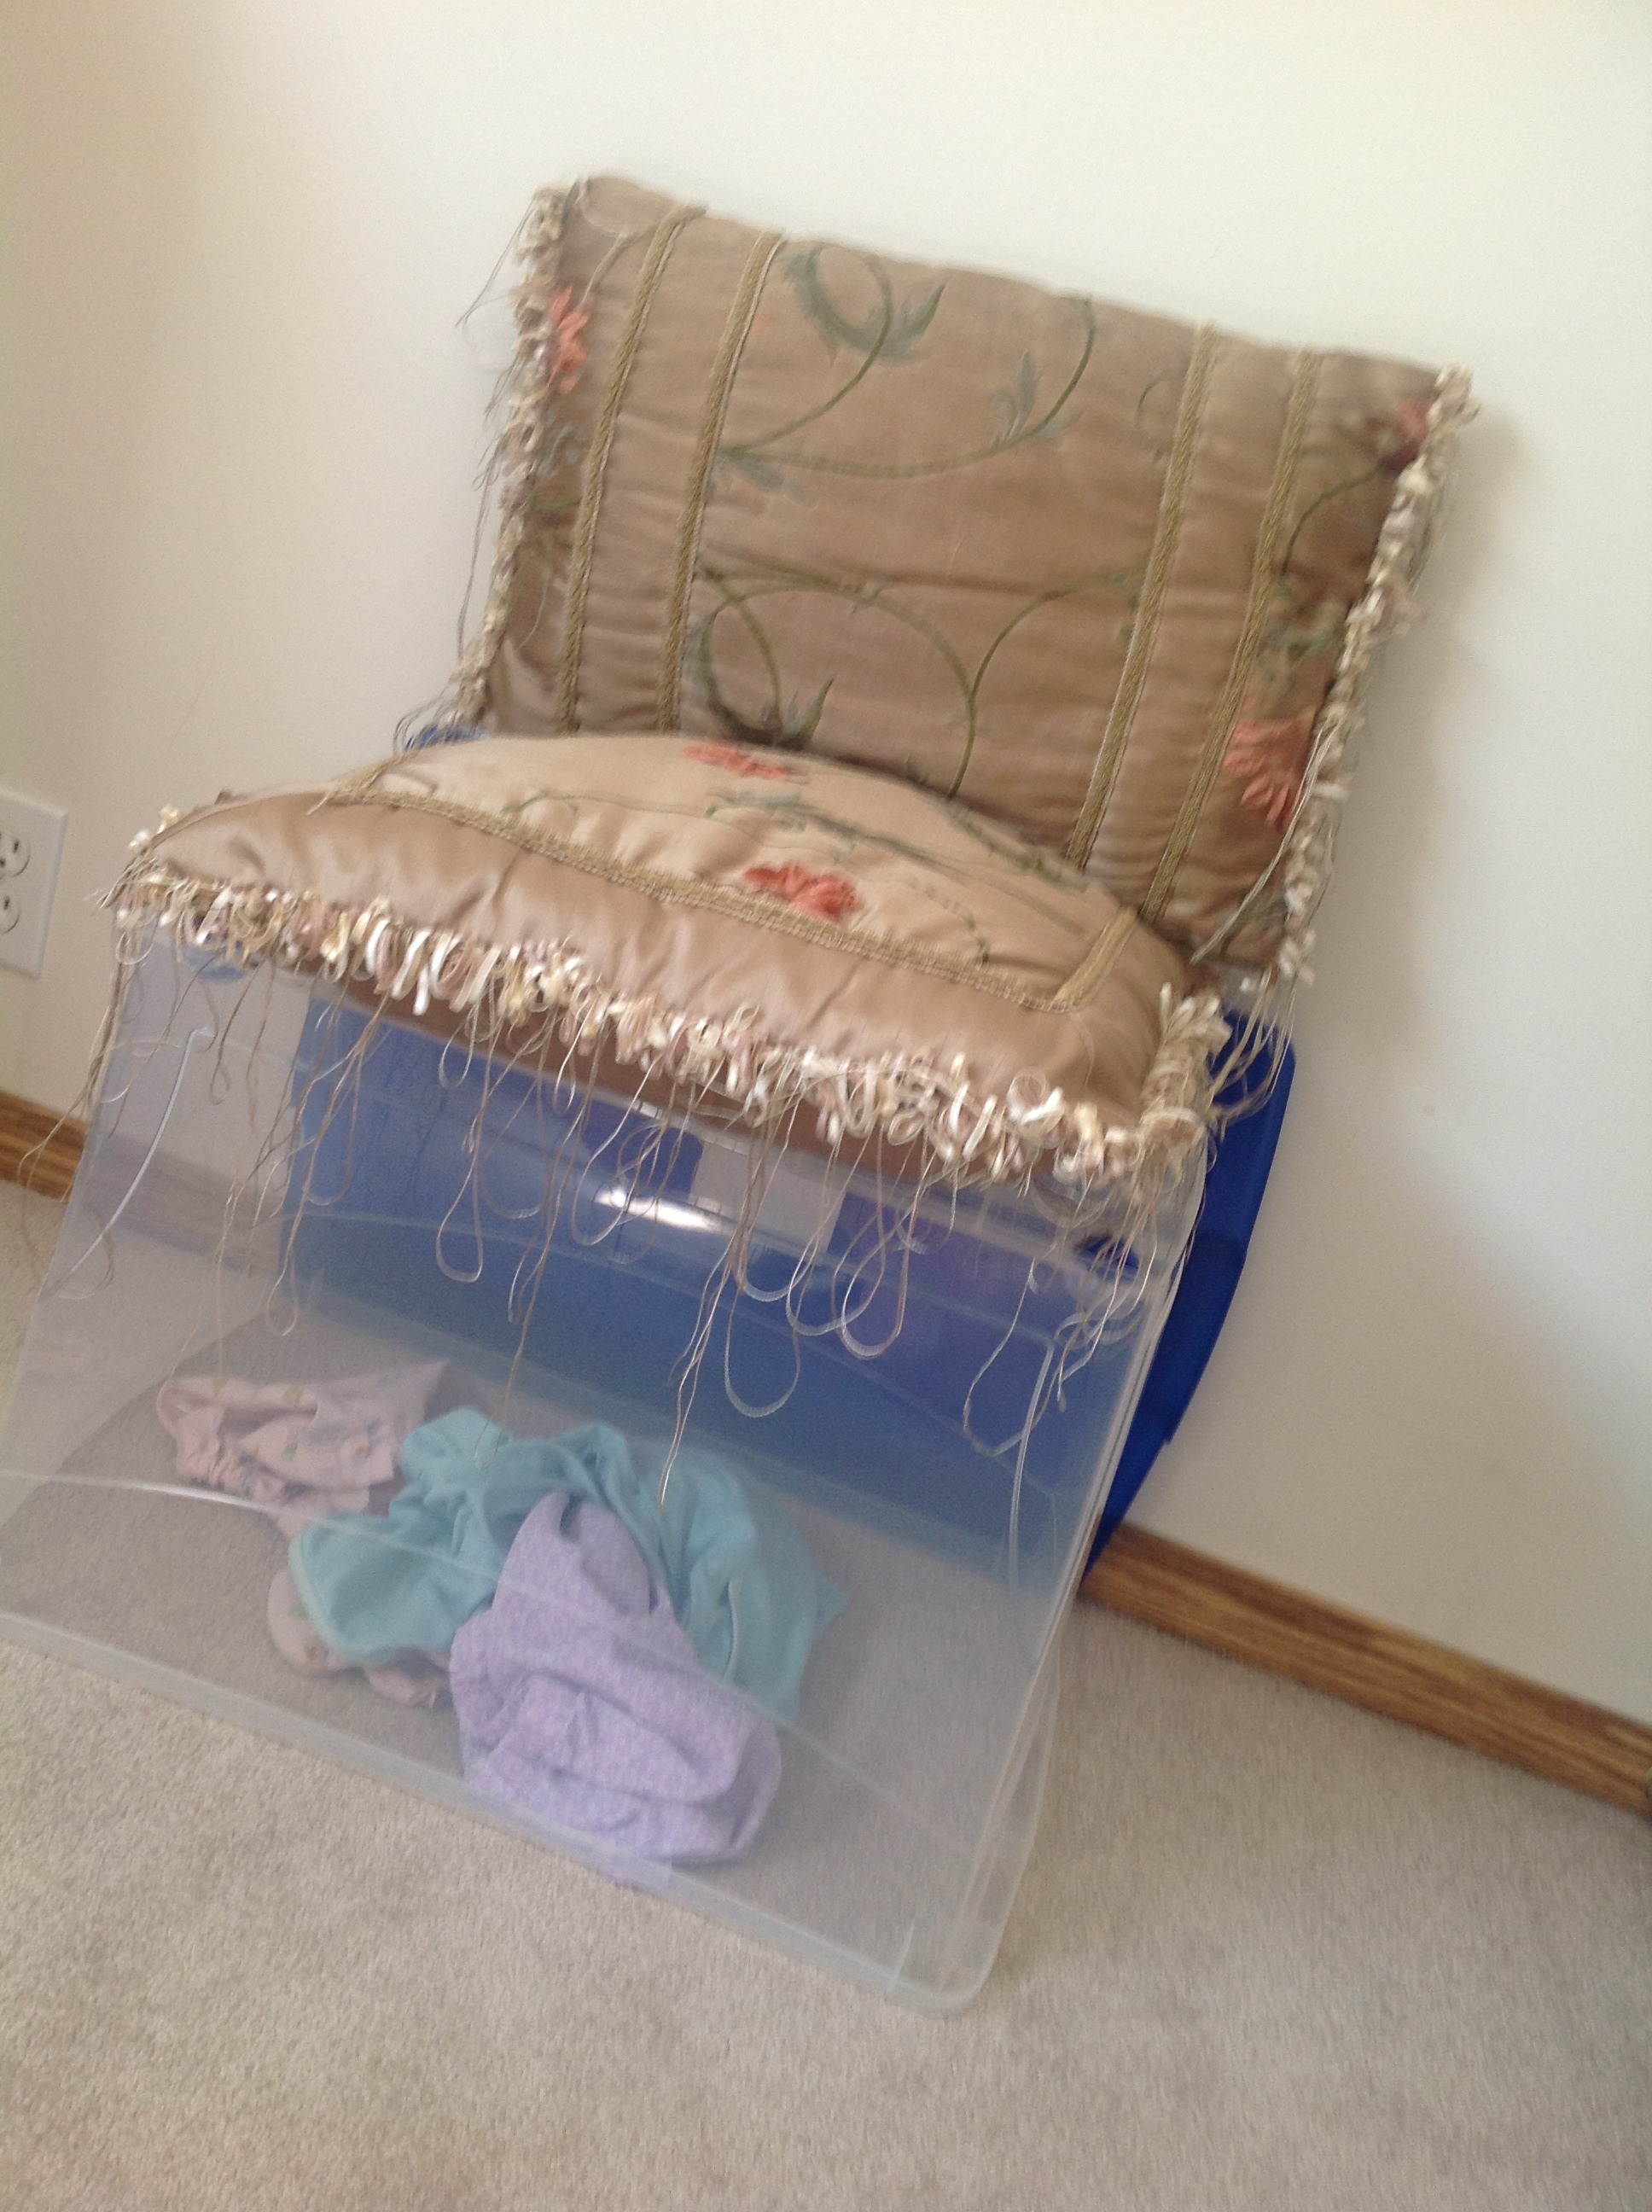 Picture of Dirty Laundry Bucket/chair Decor for Your Room!